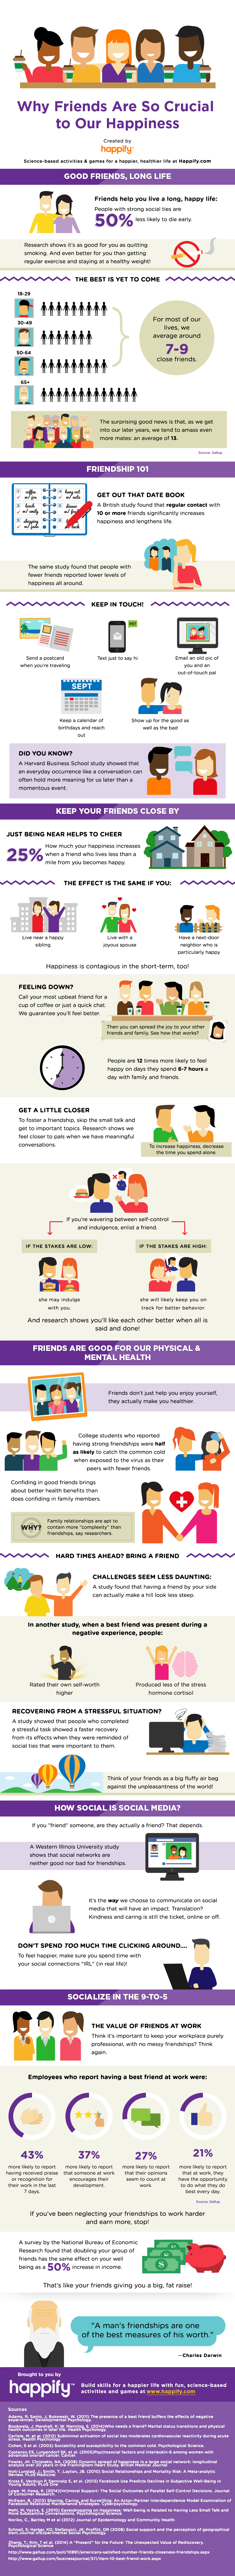 Friends Improve Our Health Infographic